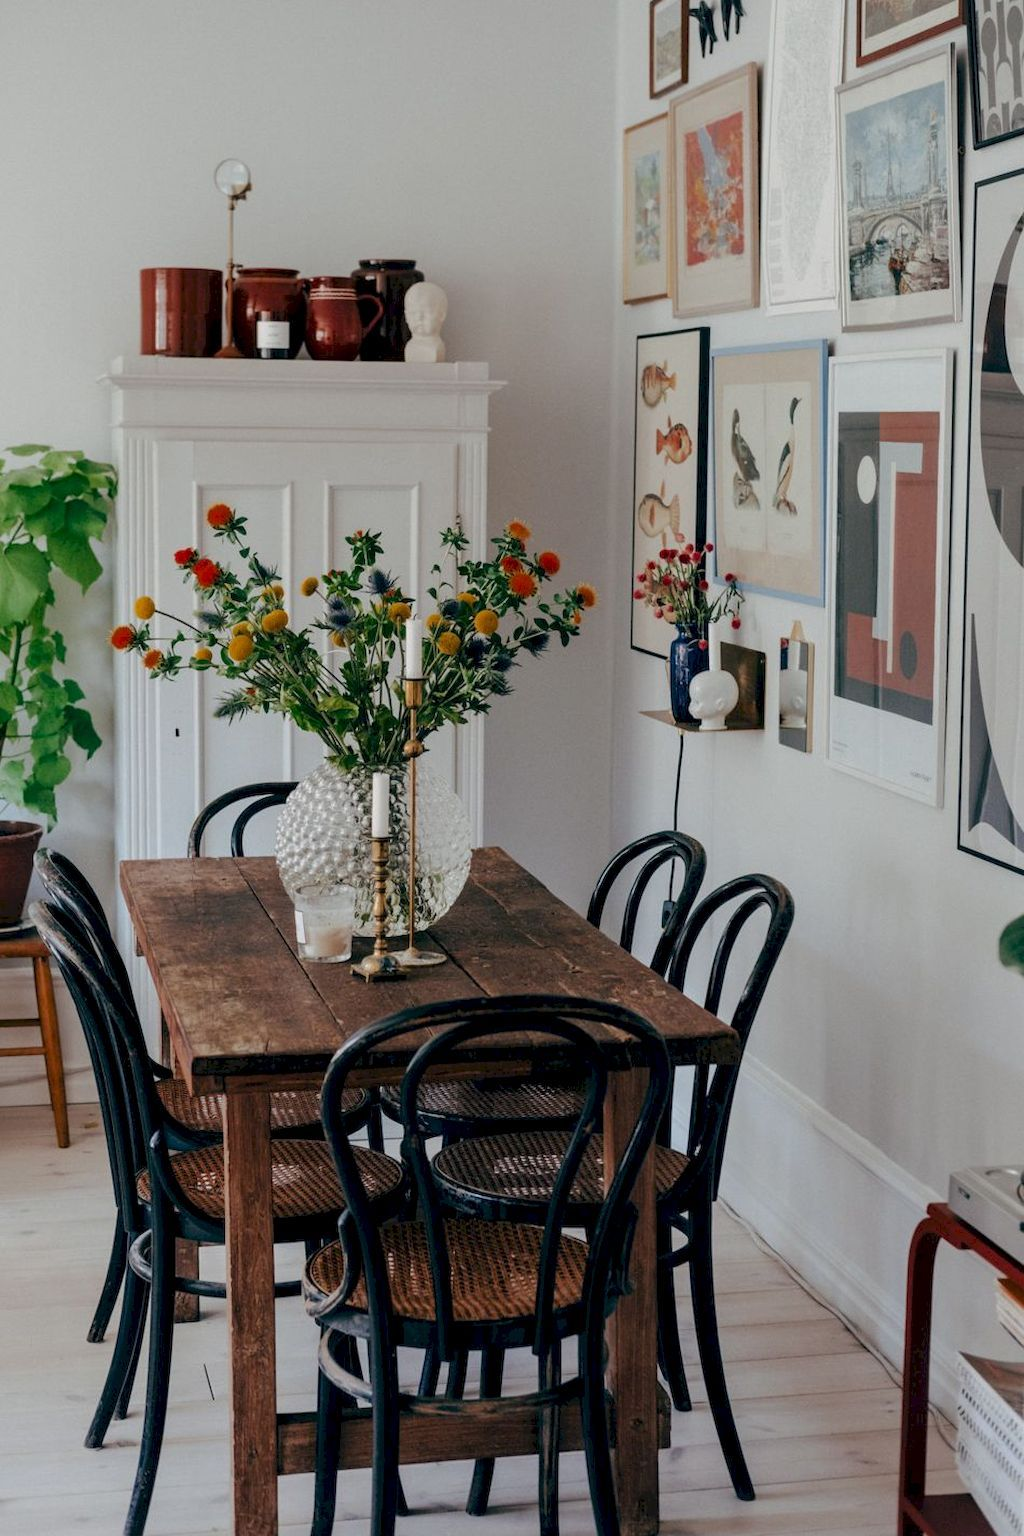 75 Amazing Small Dining Room Design Ideas With Images